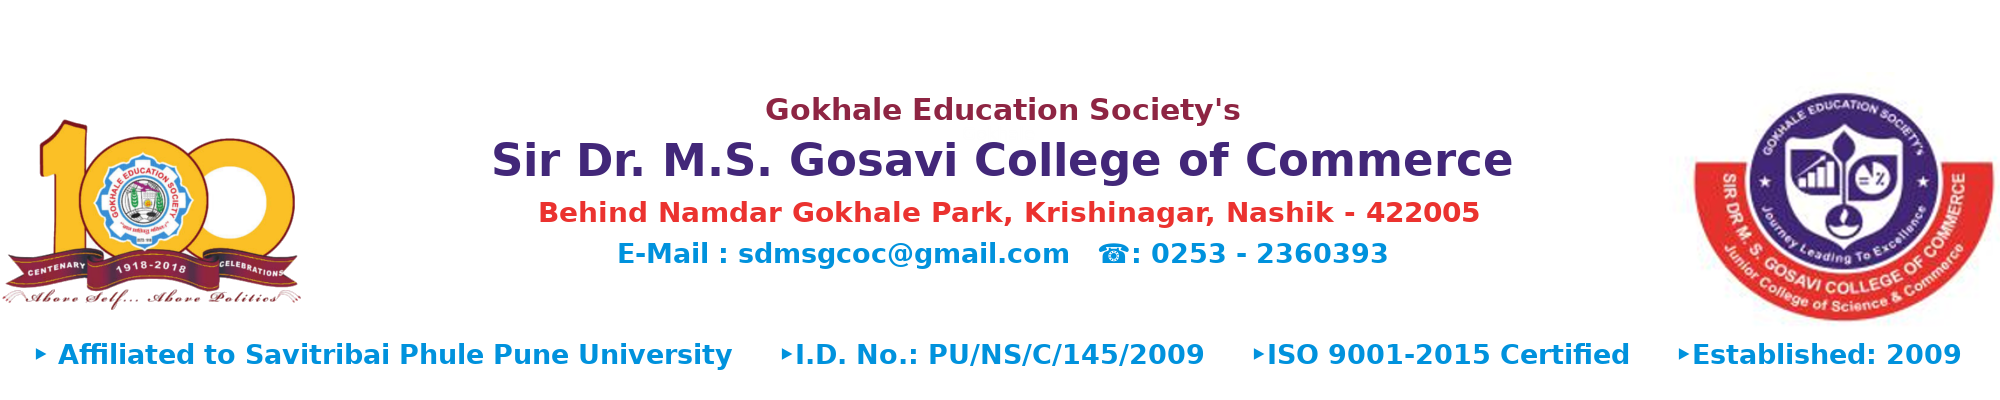 Sir Dr. M. S. Gosavi College of Commerce, Nashik